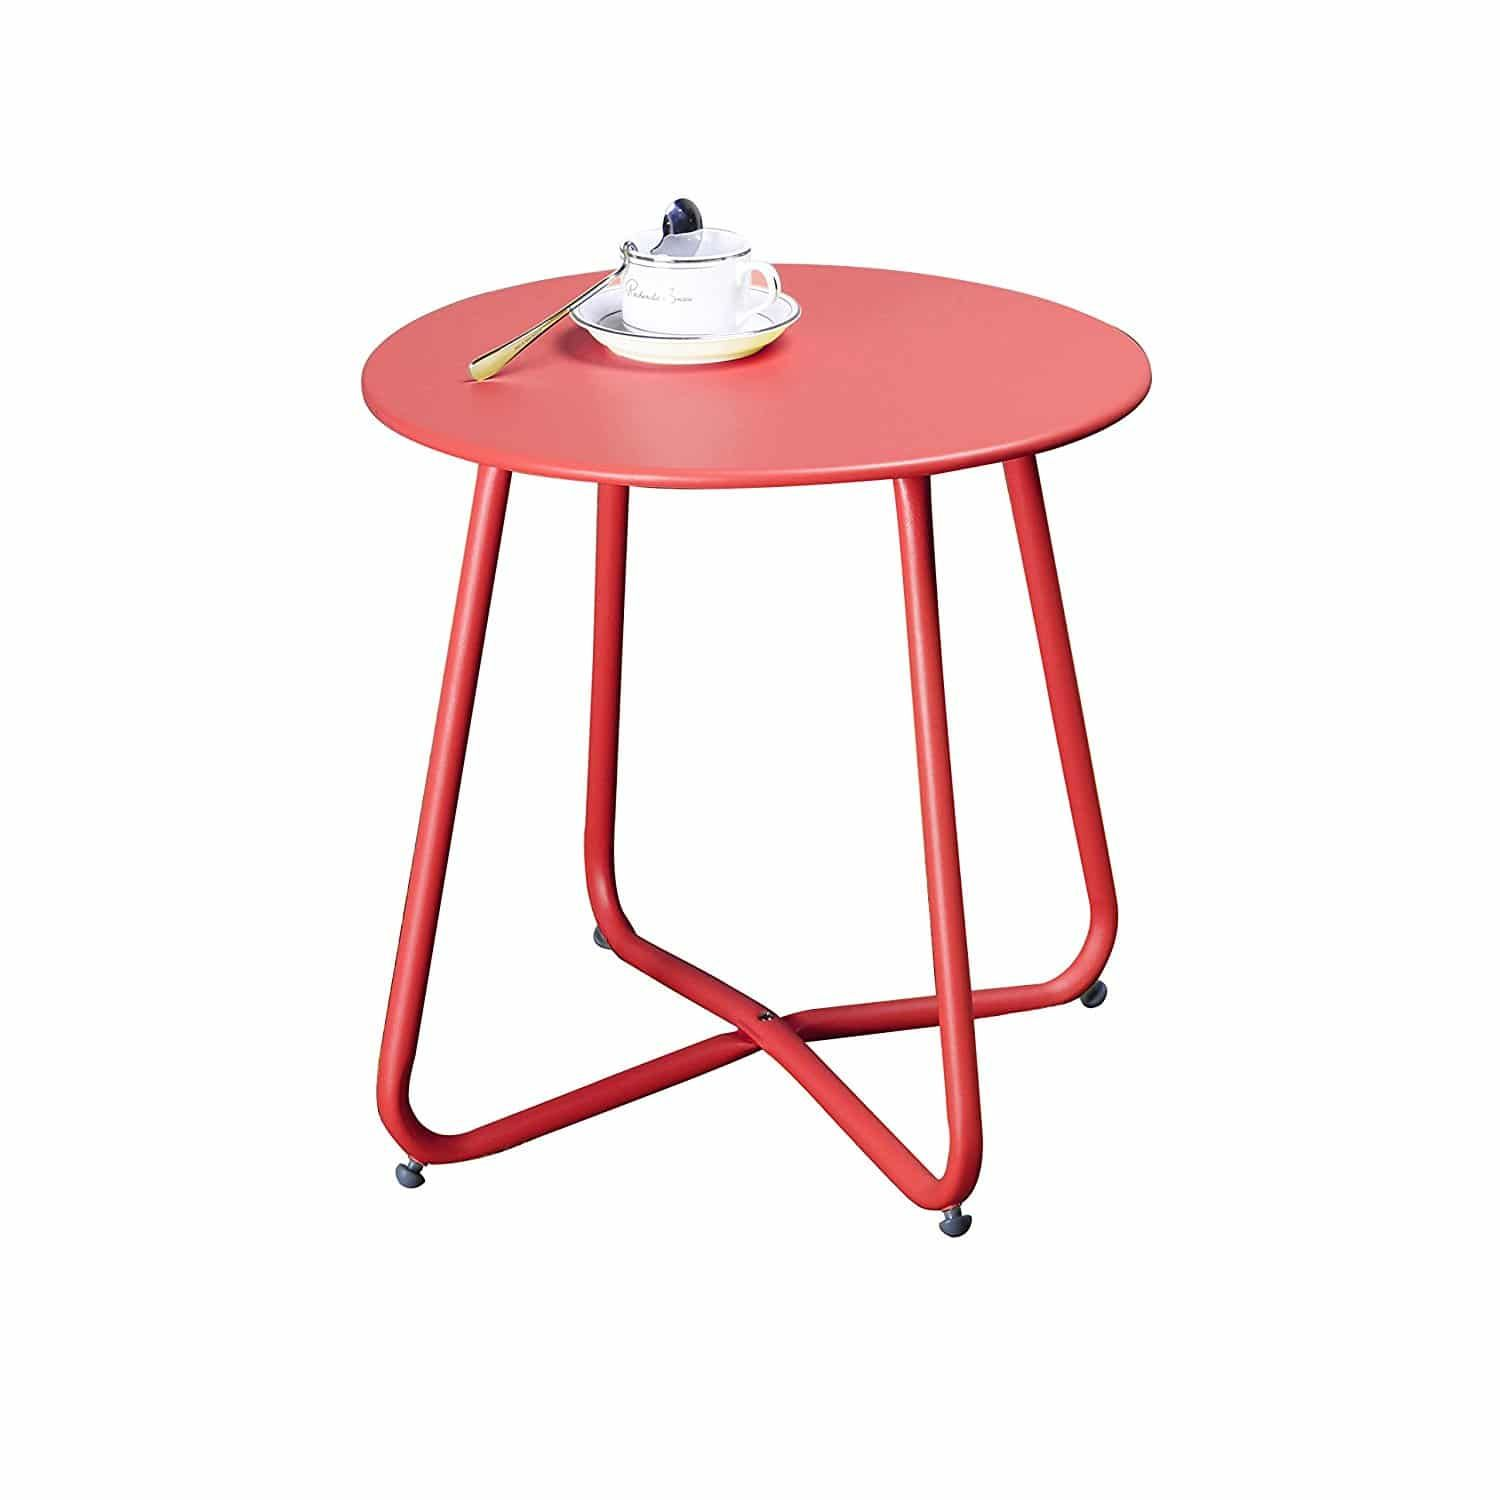 top best outdoor coffee tables metal side table grand patio steel weather resistant red small round piece end set skinny ikea childrens storage units sequin tablecloth pedestal